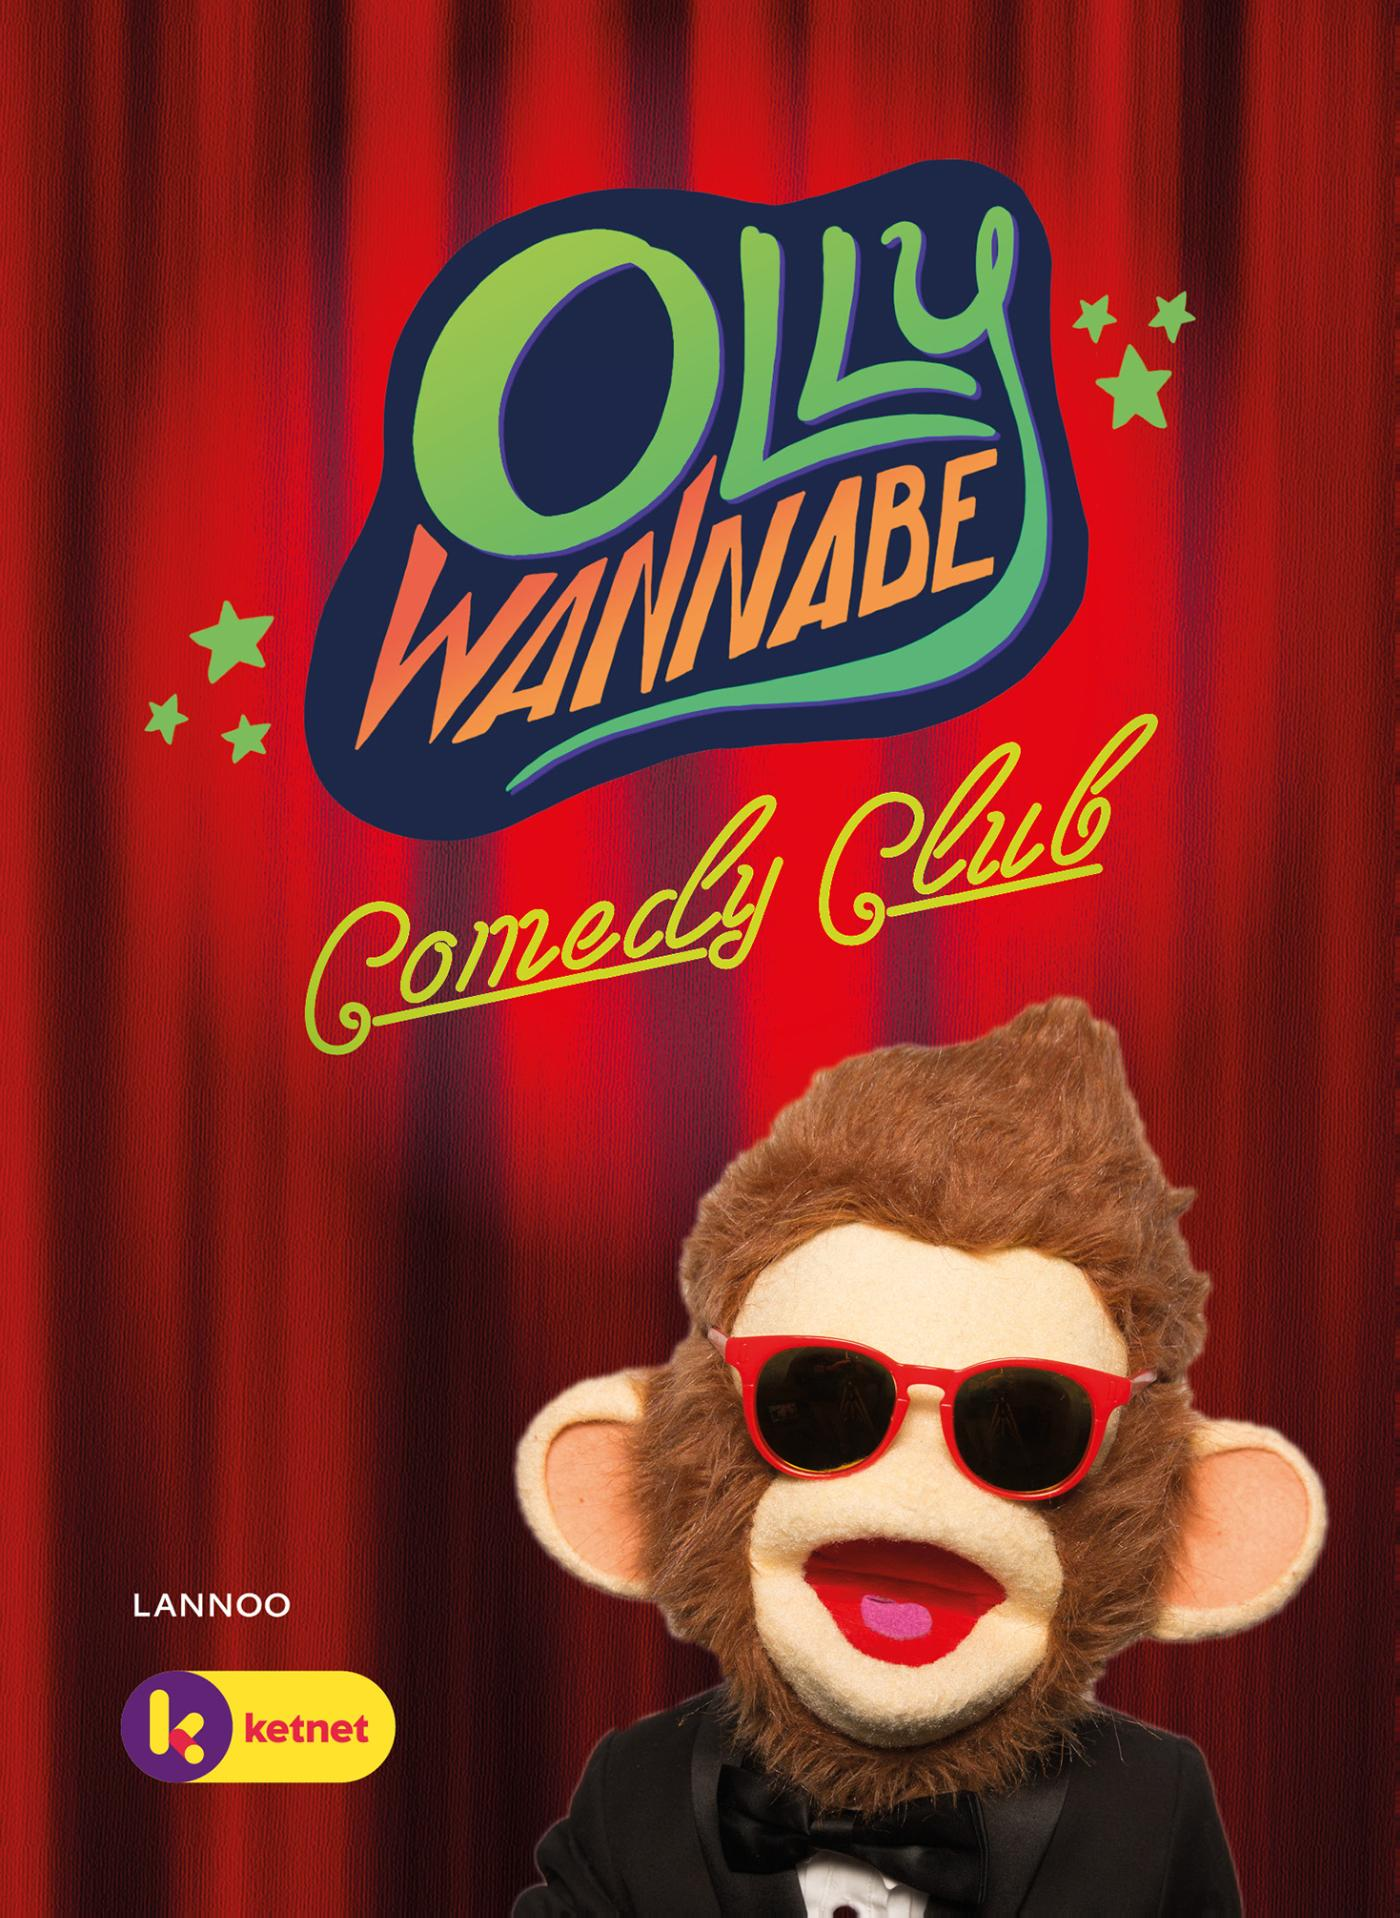 Olly Wanabe's Comedy Club